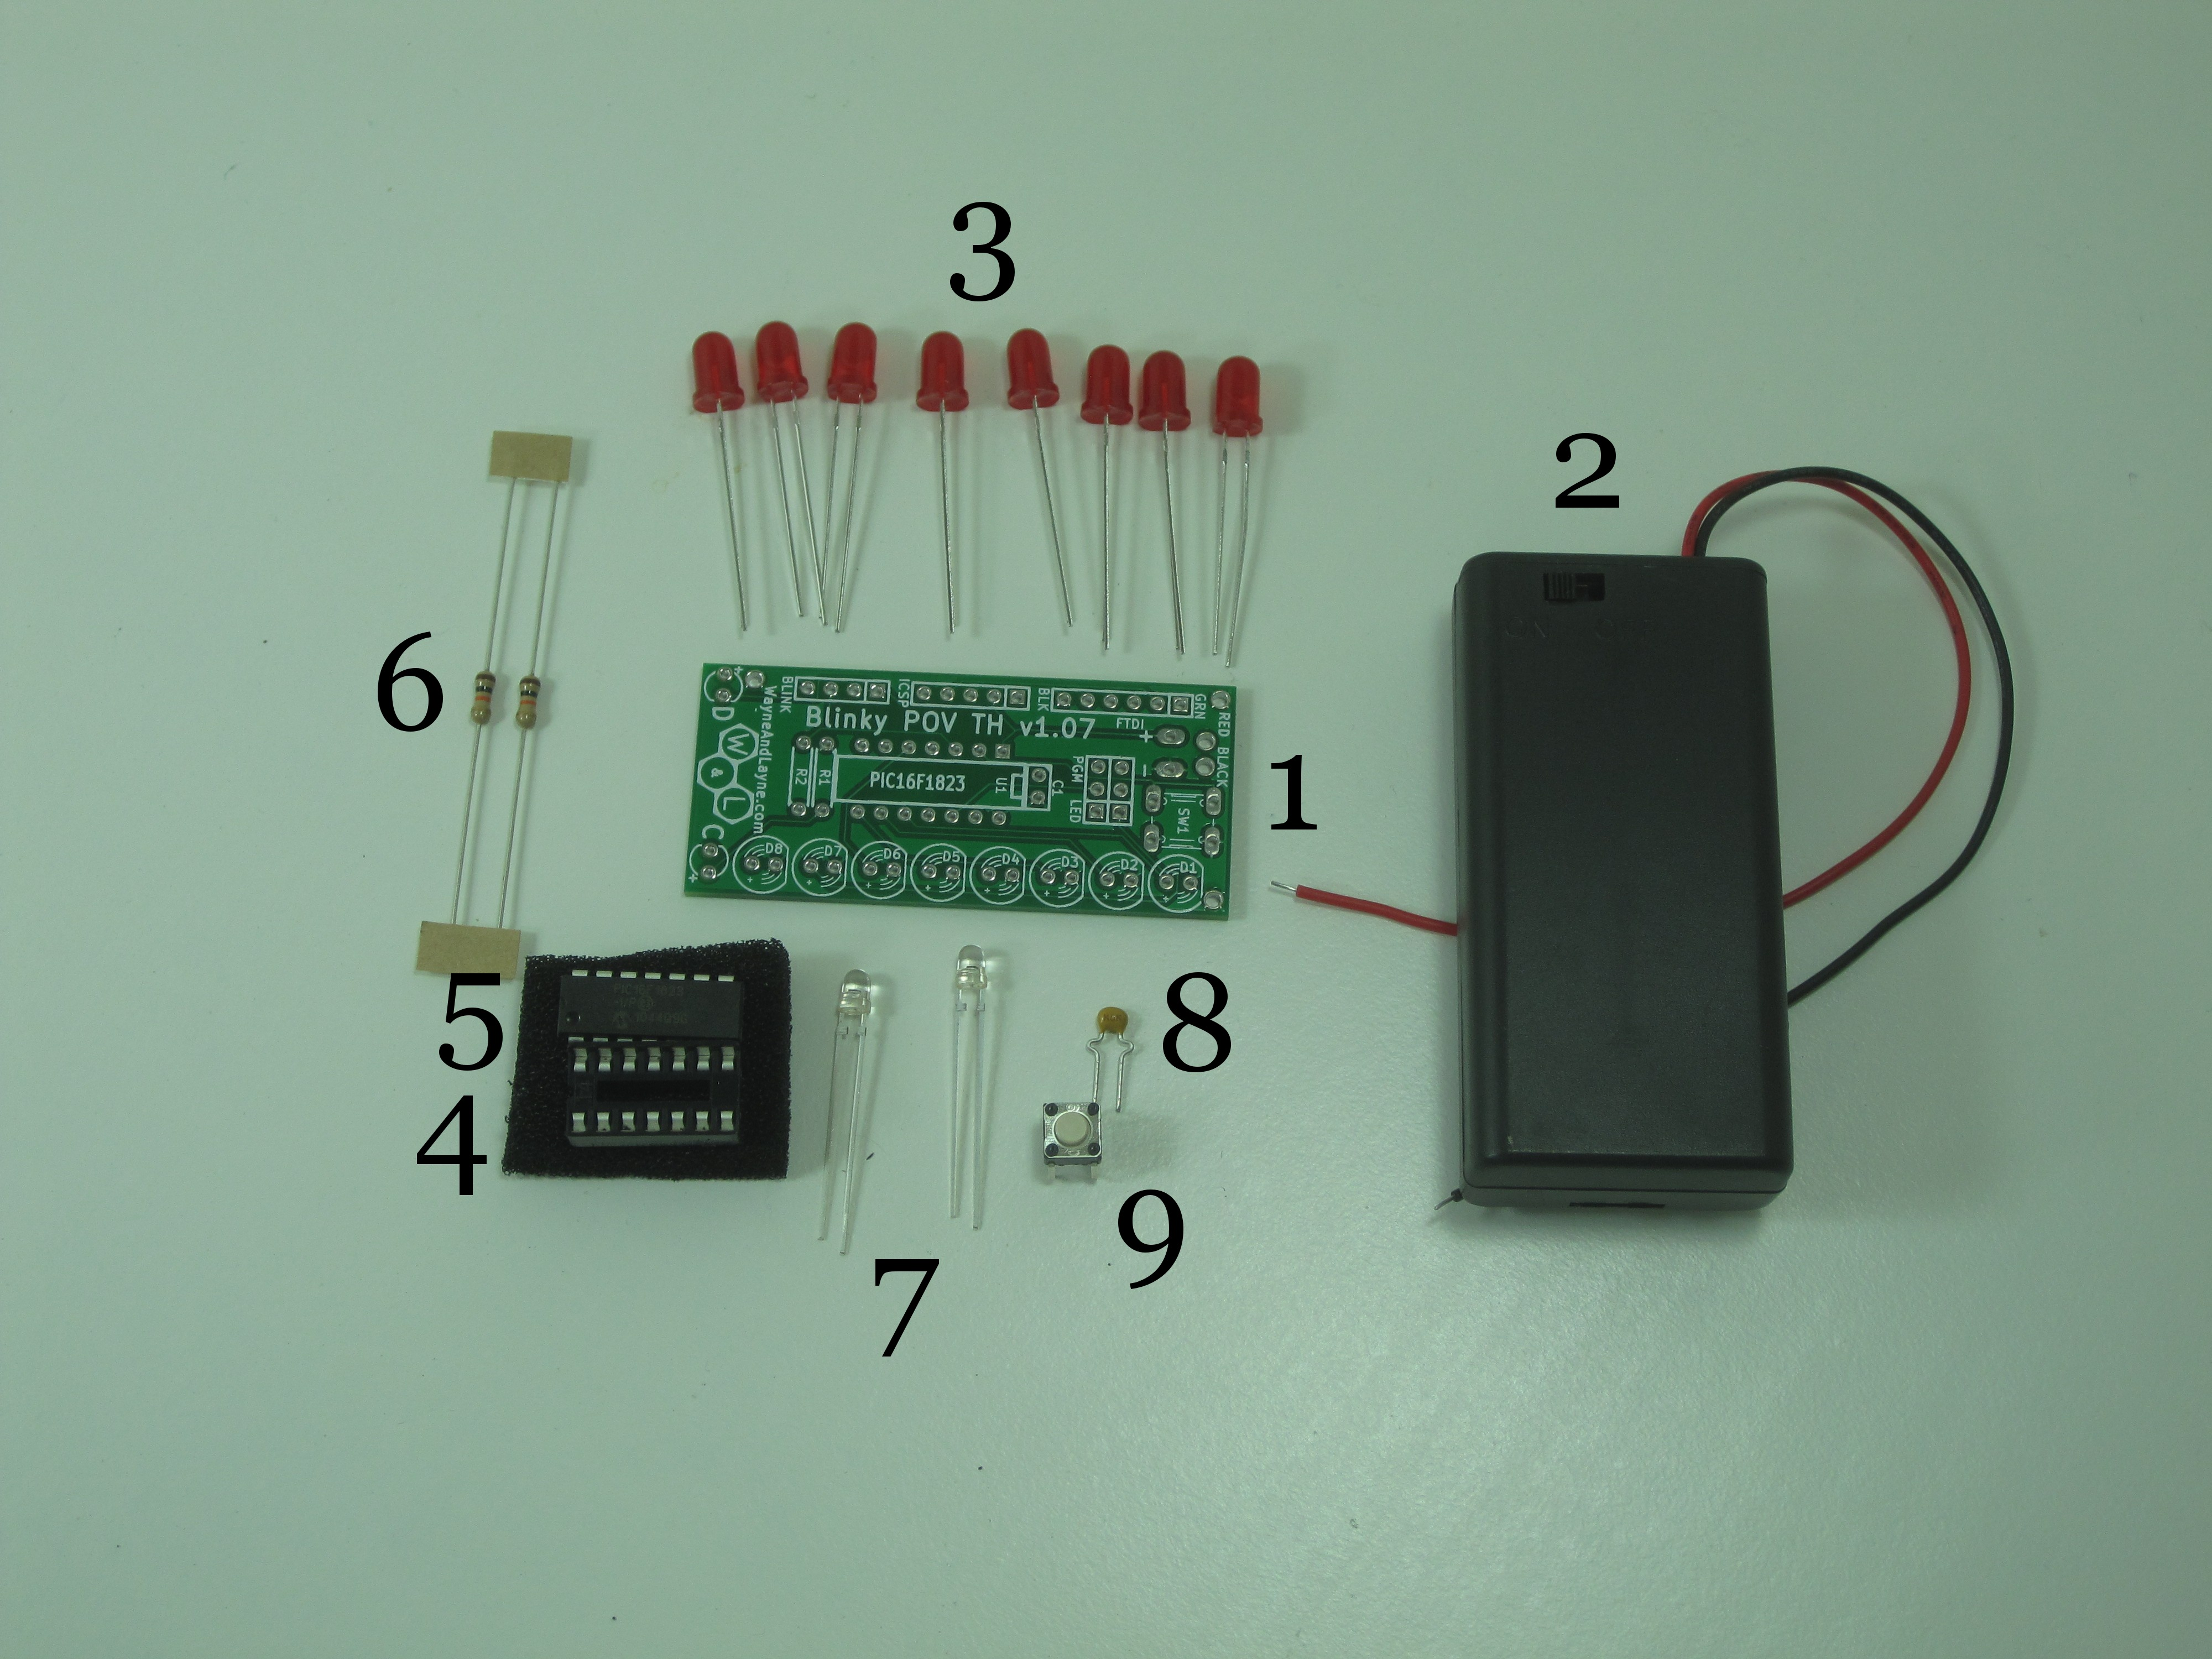 Parts List Wayne And Layne Image Led Pcb Circuit Board Download Annotated Blinky Pov Kit